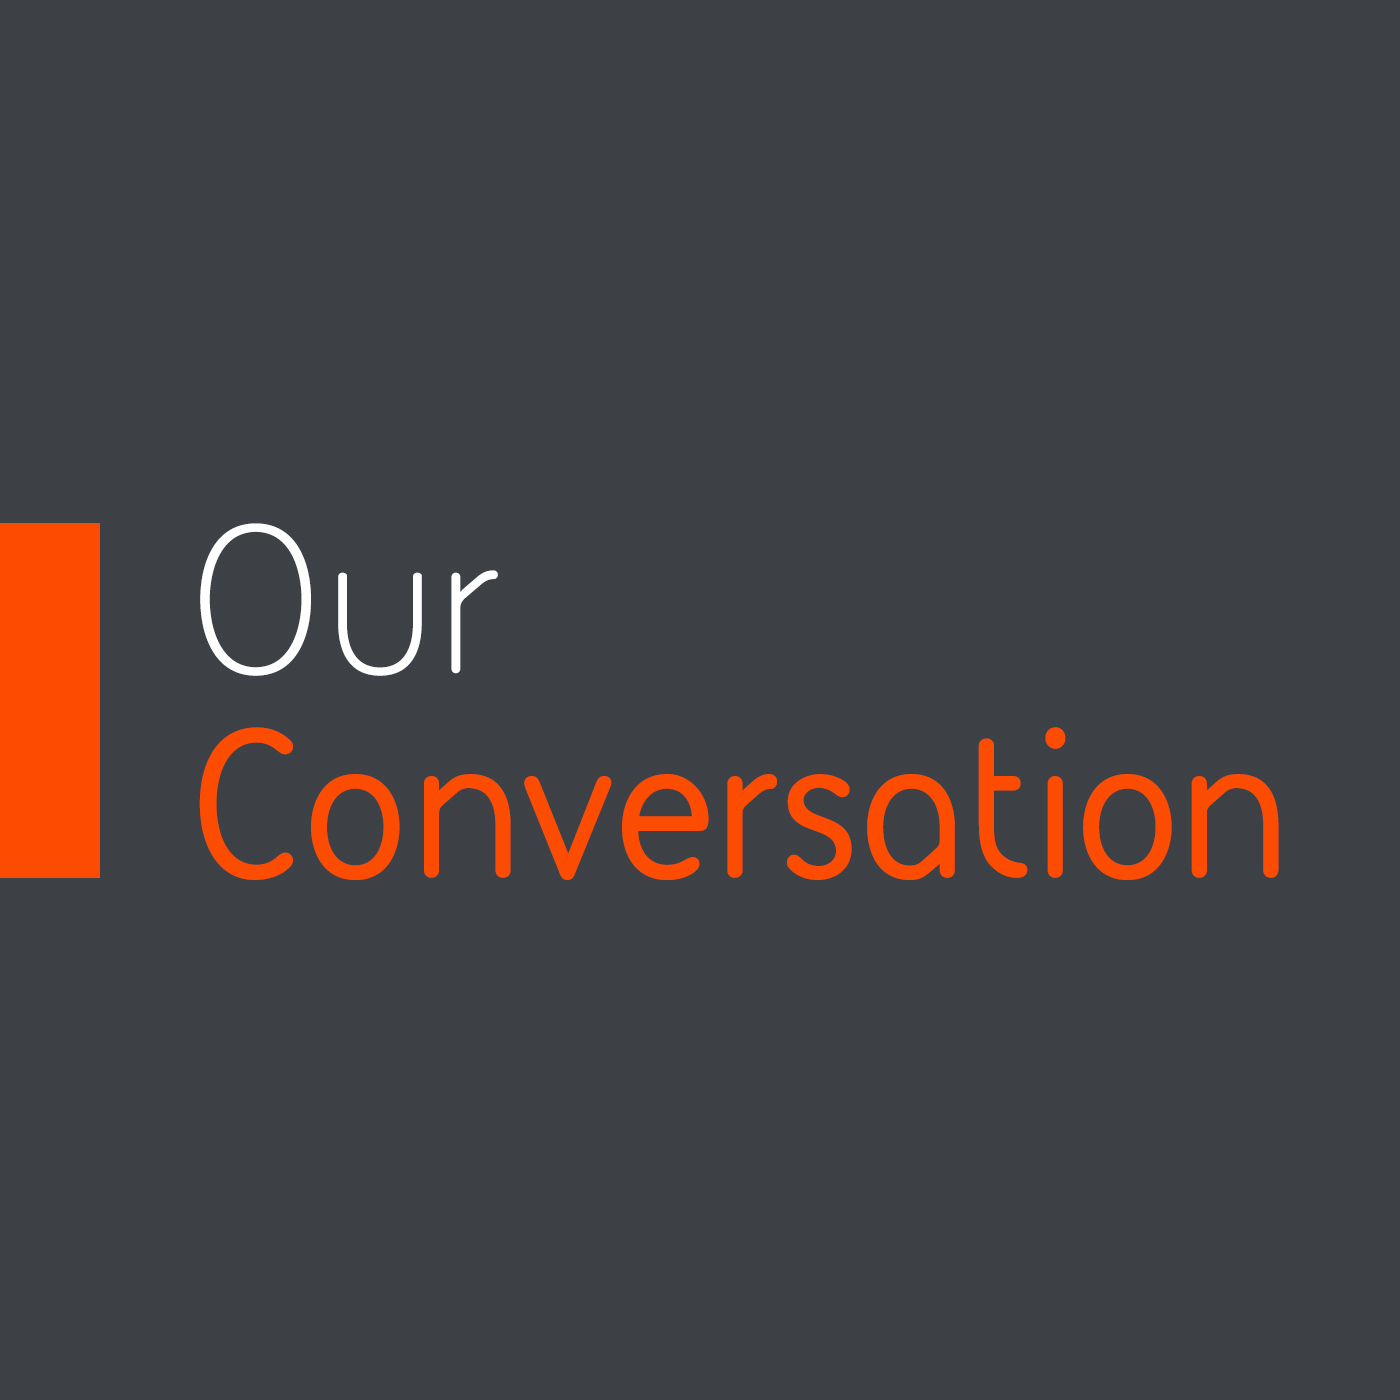 Our Conversation Specials